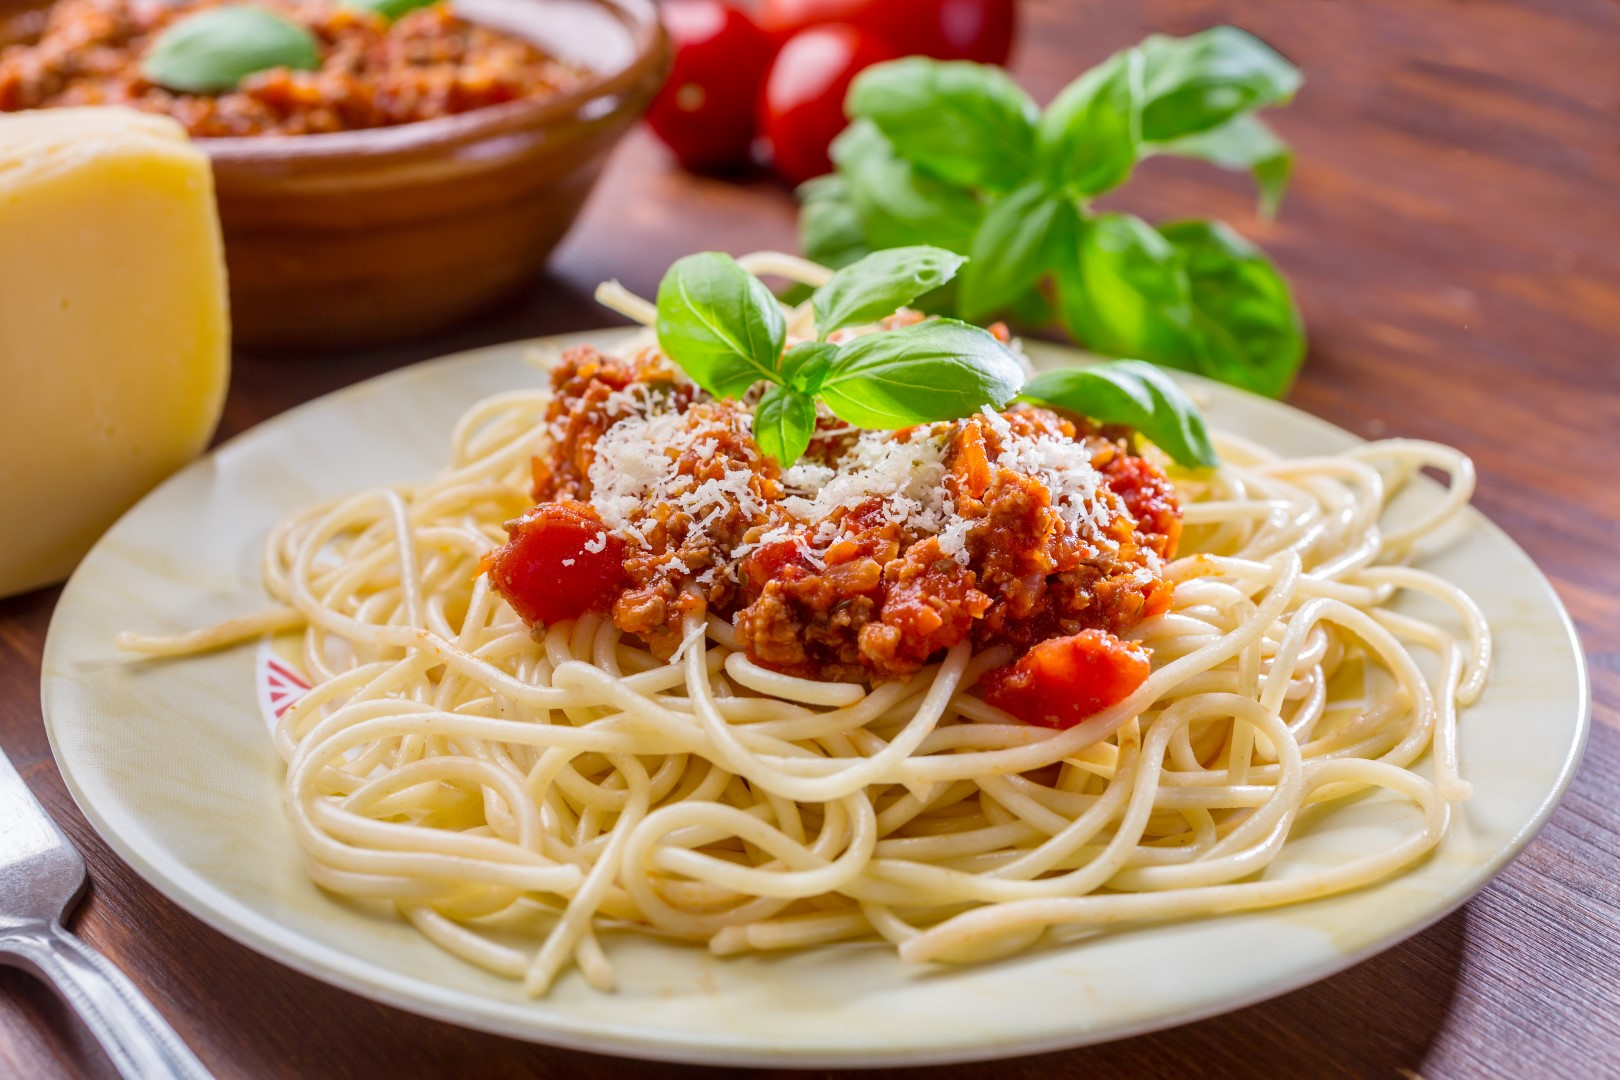 Simple meals - Spaghetti Bolognese